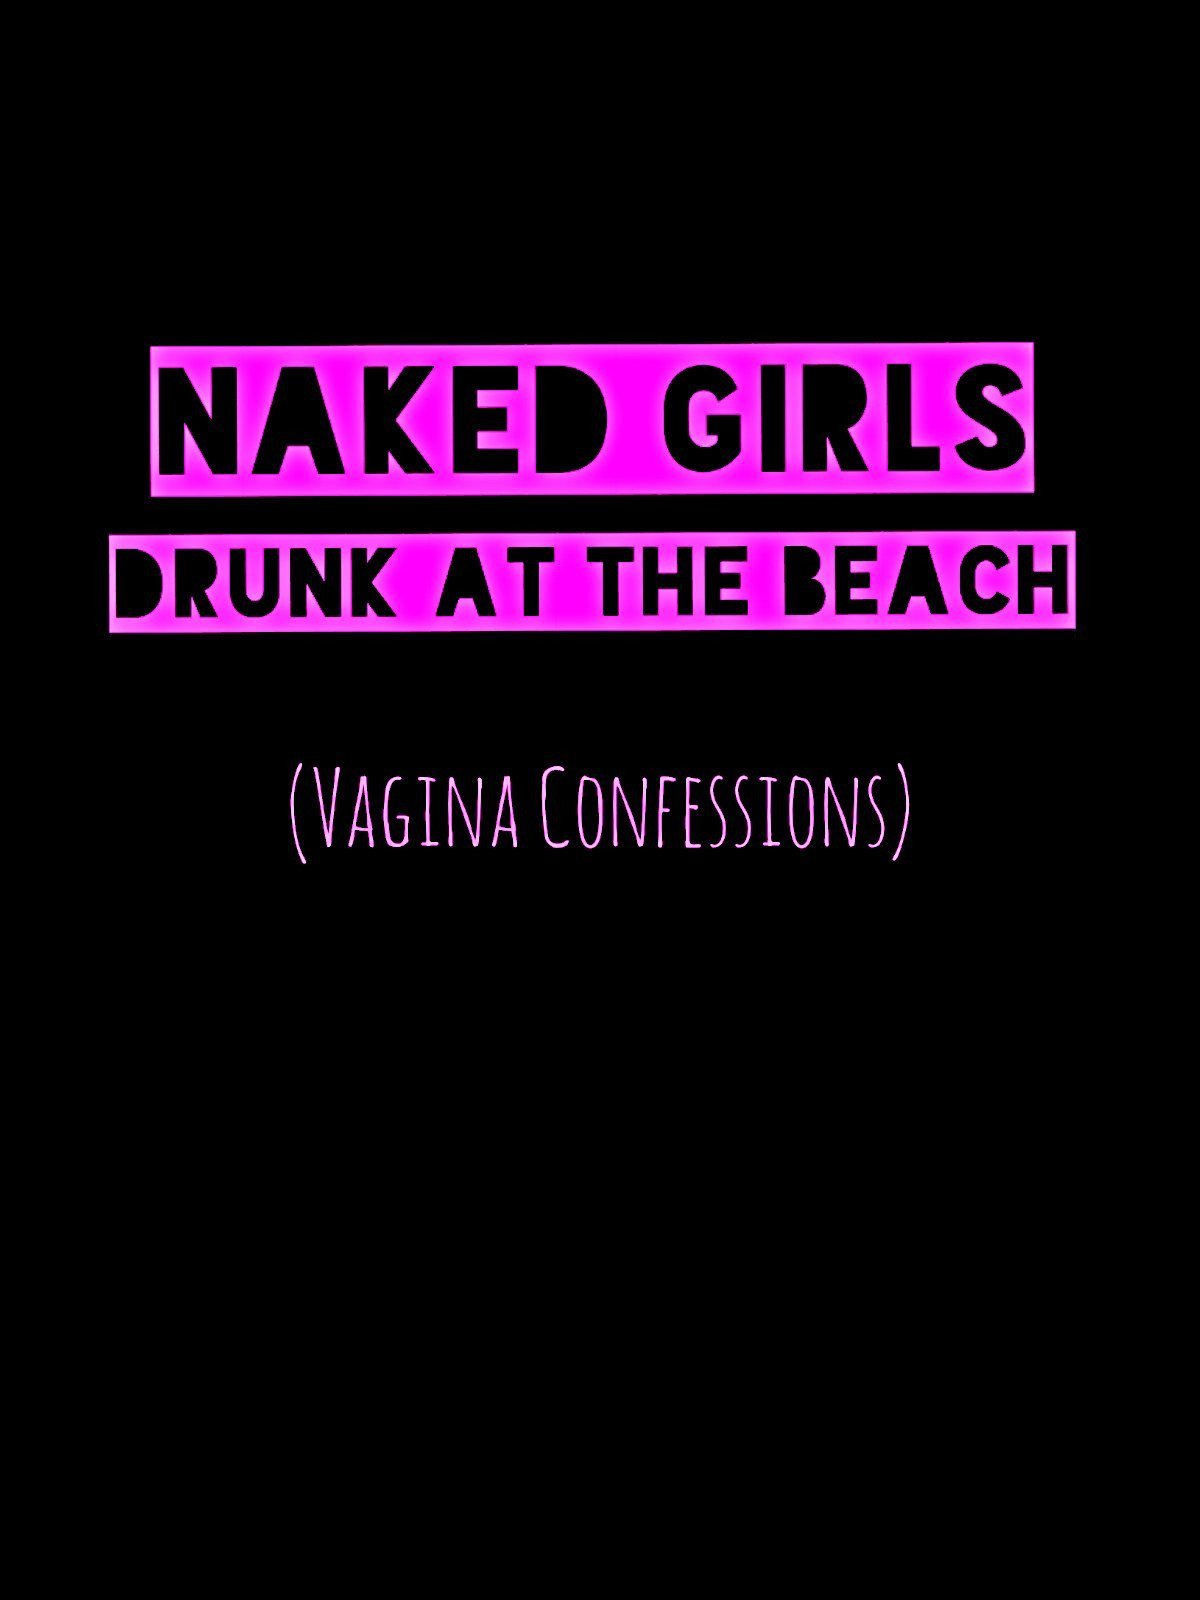 Naked Girls Drunk at the Beach (Vagina Confessions)